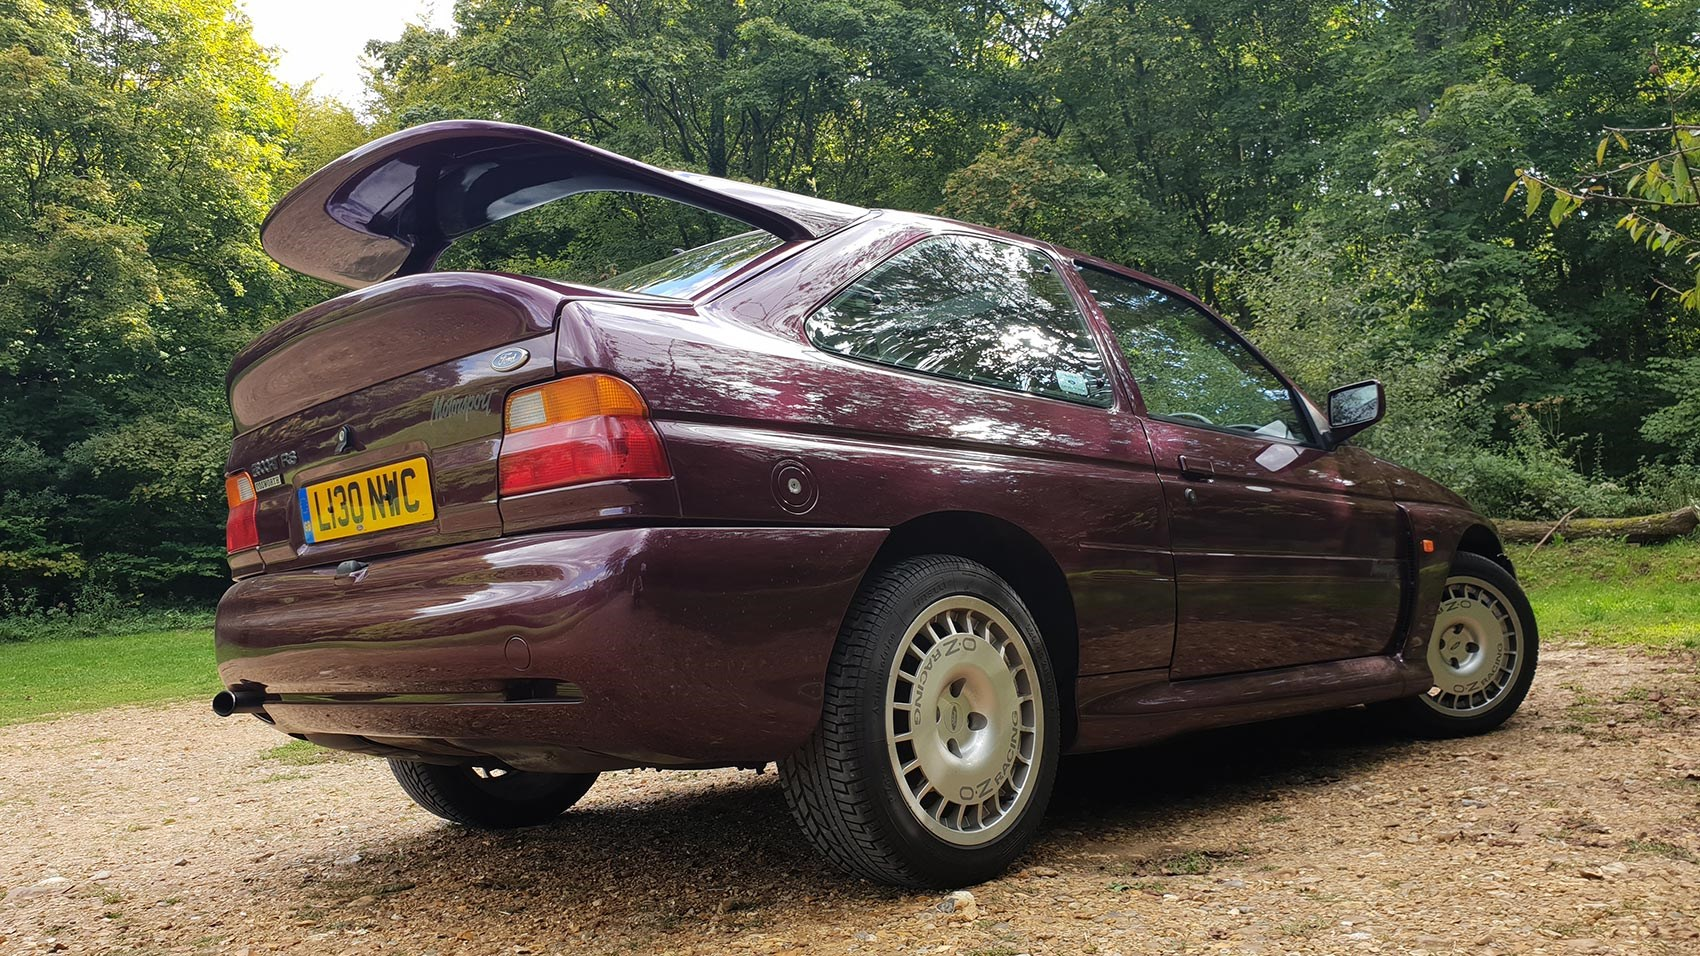 Ford Escort Cosworth Monte Carlo road test, specs and prices: now worth around £70,000